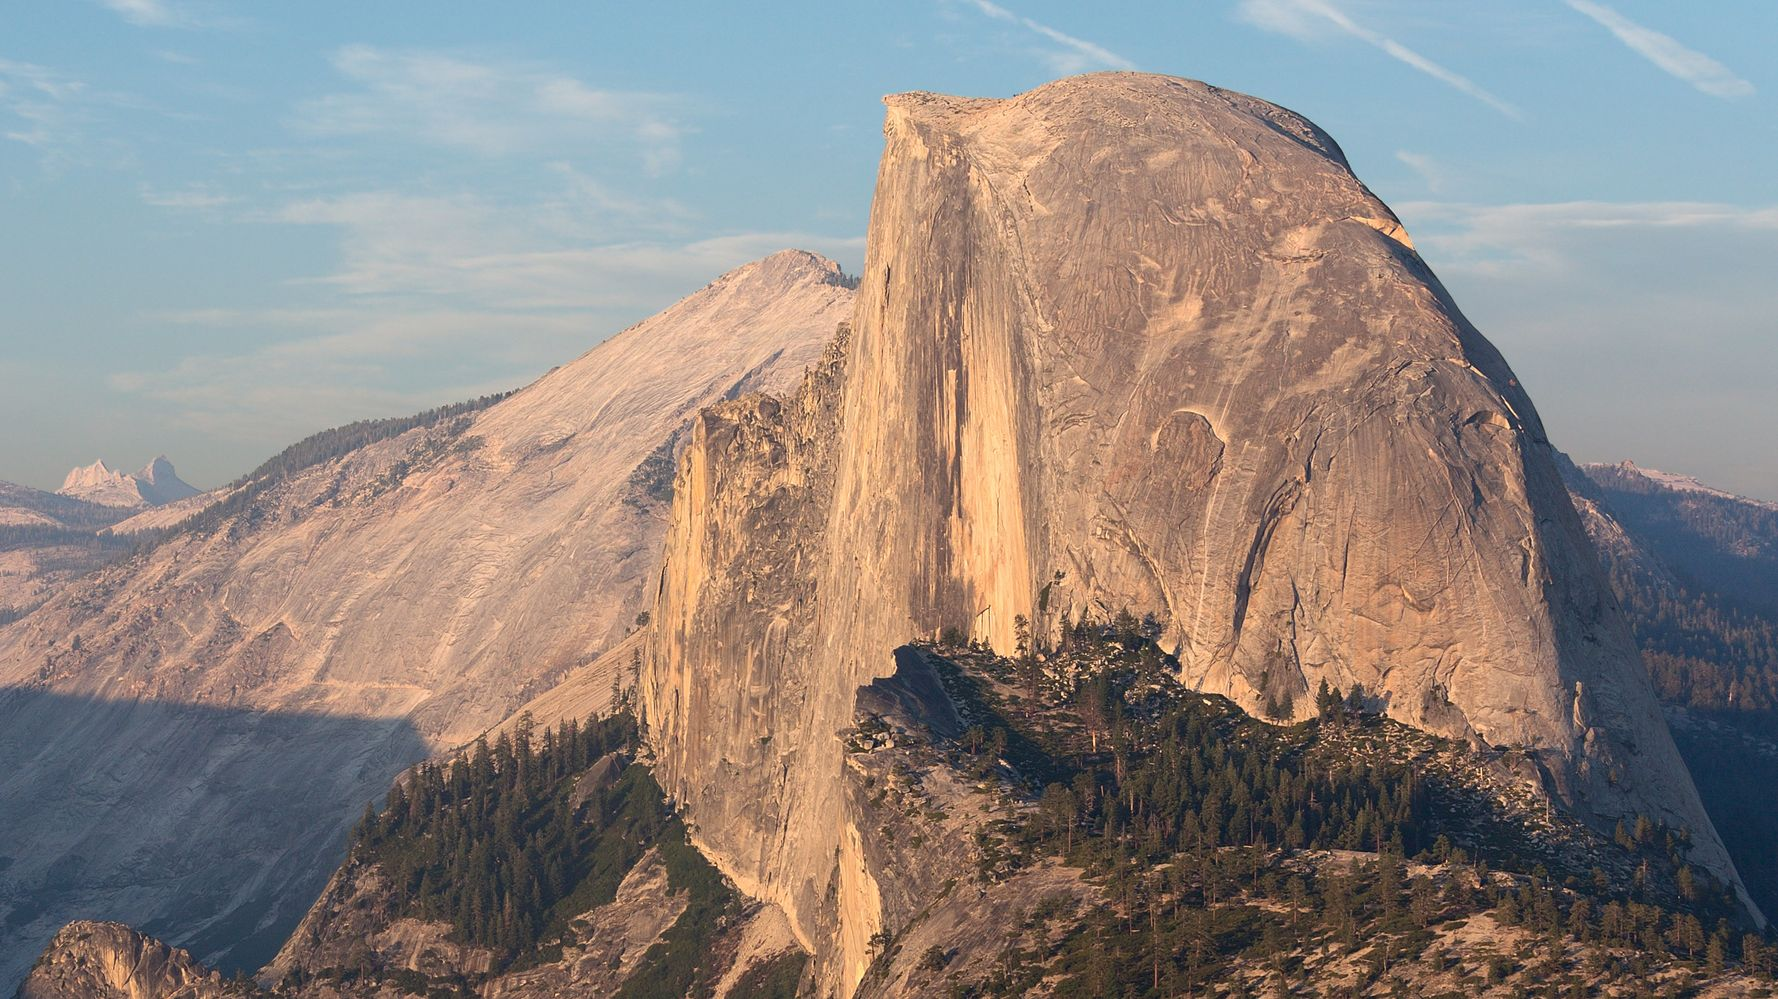 Hiker Dies After Falling From Yosemite's Iconic Half Dome Trail